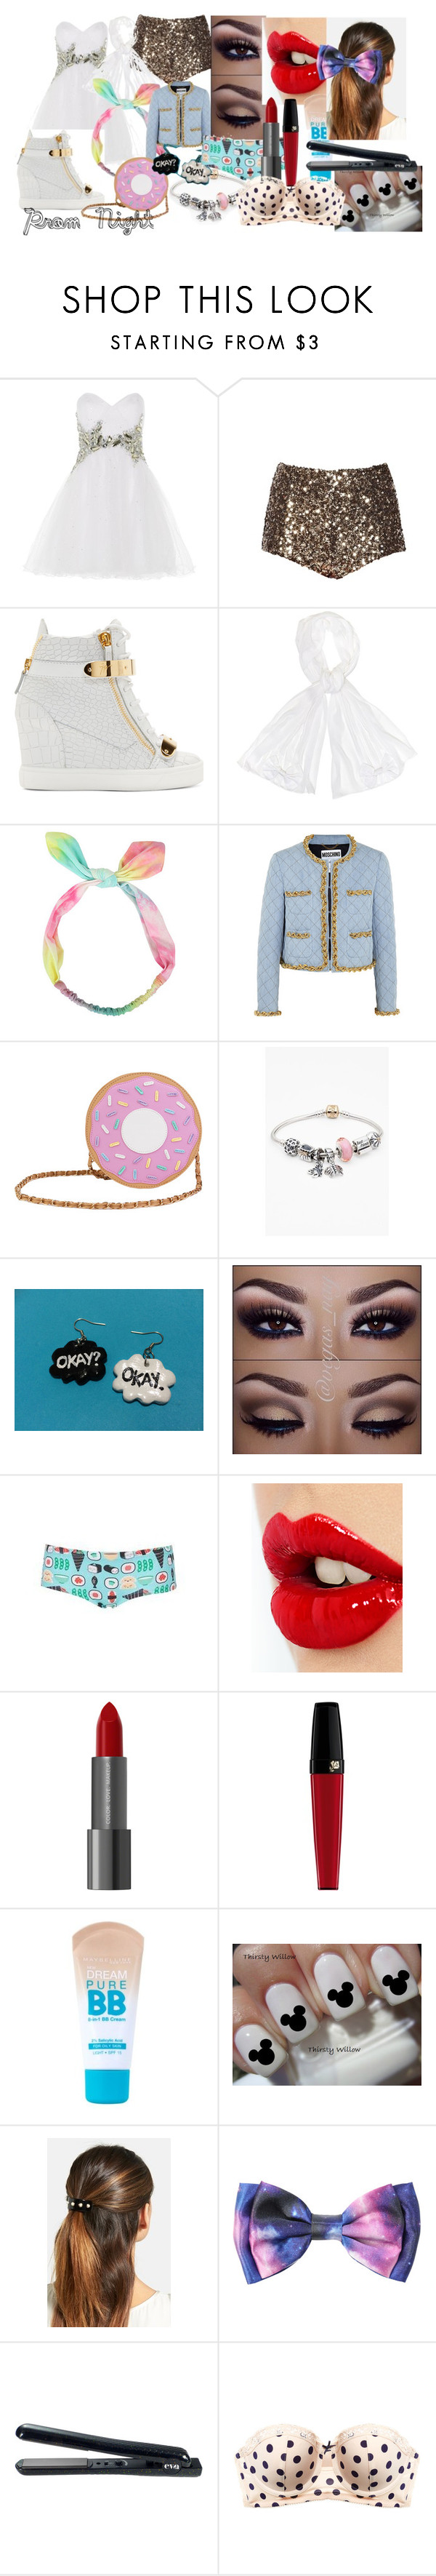 """Prom Night"" by rosie443 on Polyvore featuring Anoushka G, French Connection, Giuseppe Zanotti, Betsey Johnson, Moschino, Nila Anthony, Pandora, Topshop, Charlotte Tilbury and Lancôme"